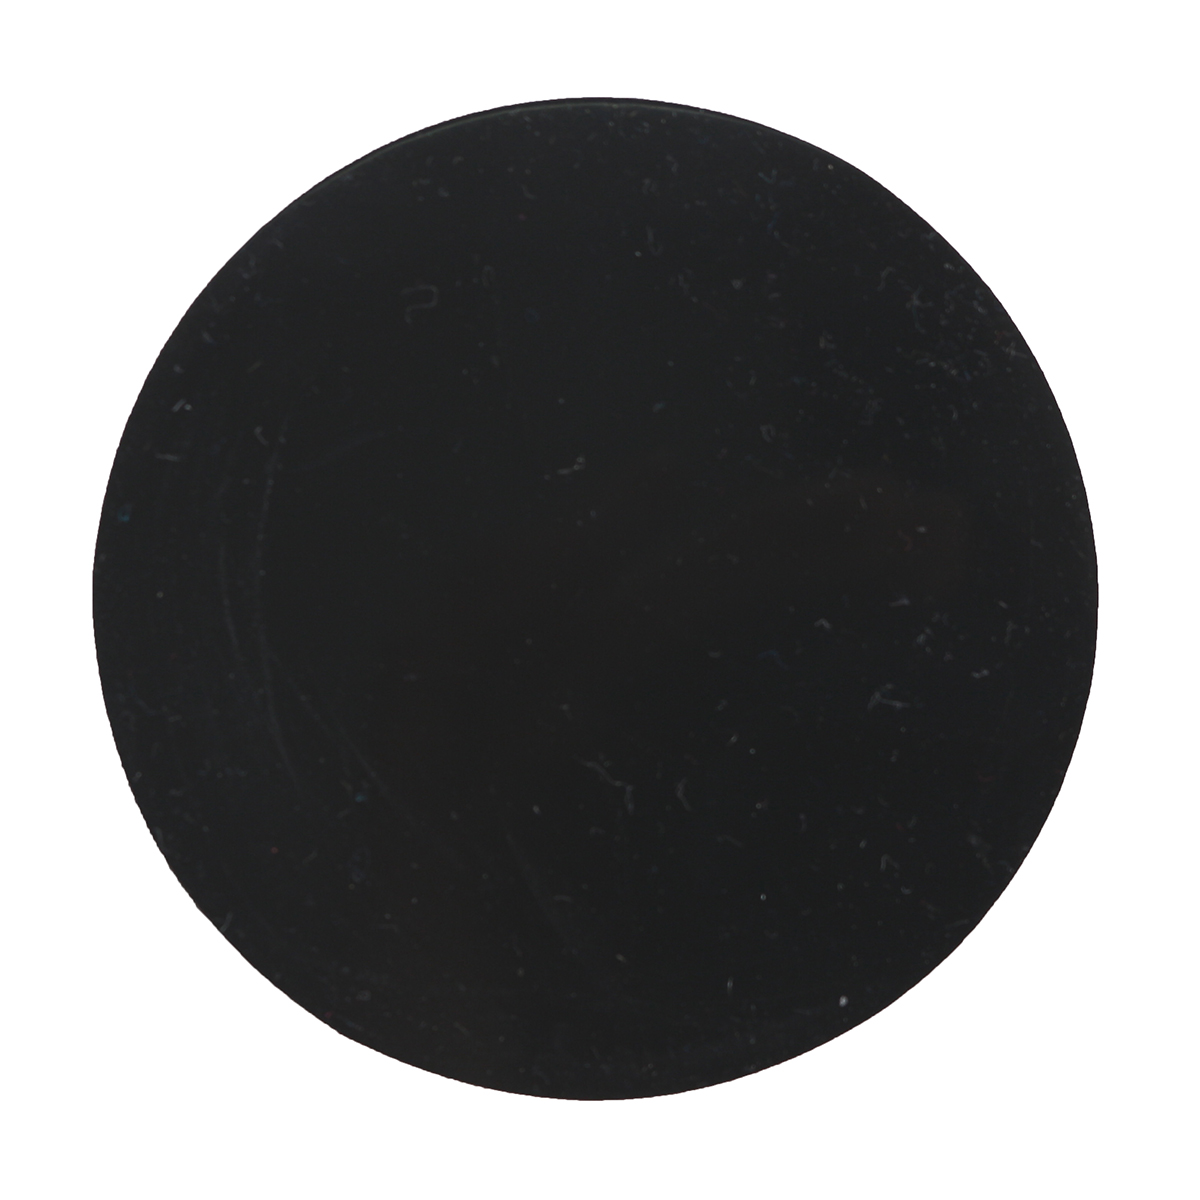 10Pcs 80mm Round Black Silicone Oval Model Bases Support for Wargames Table Games